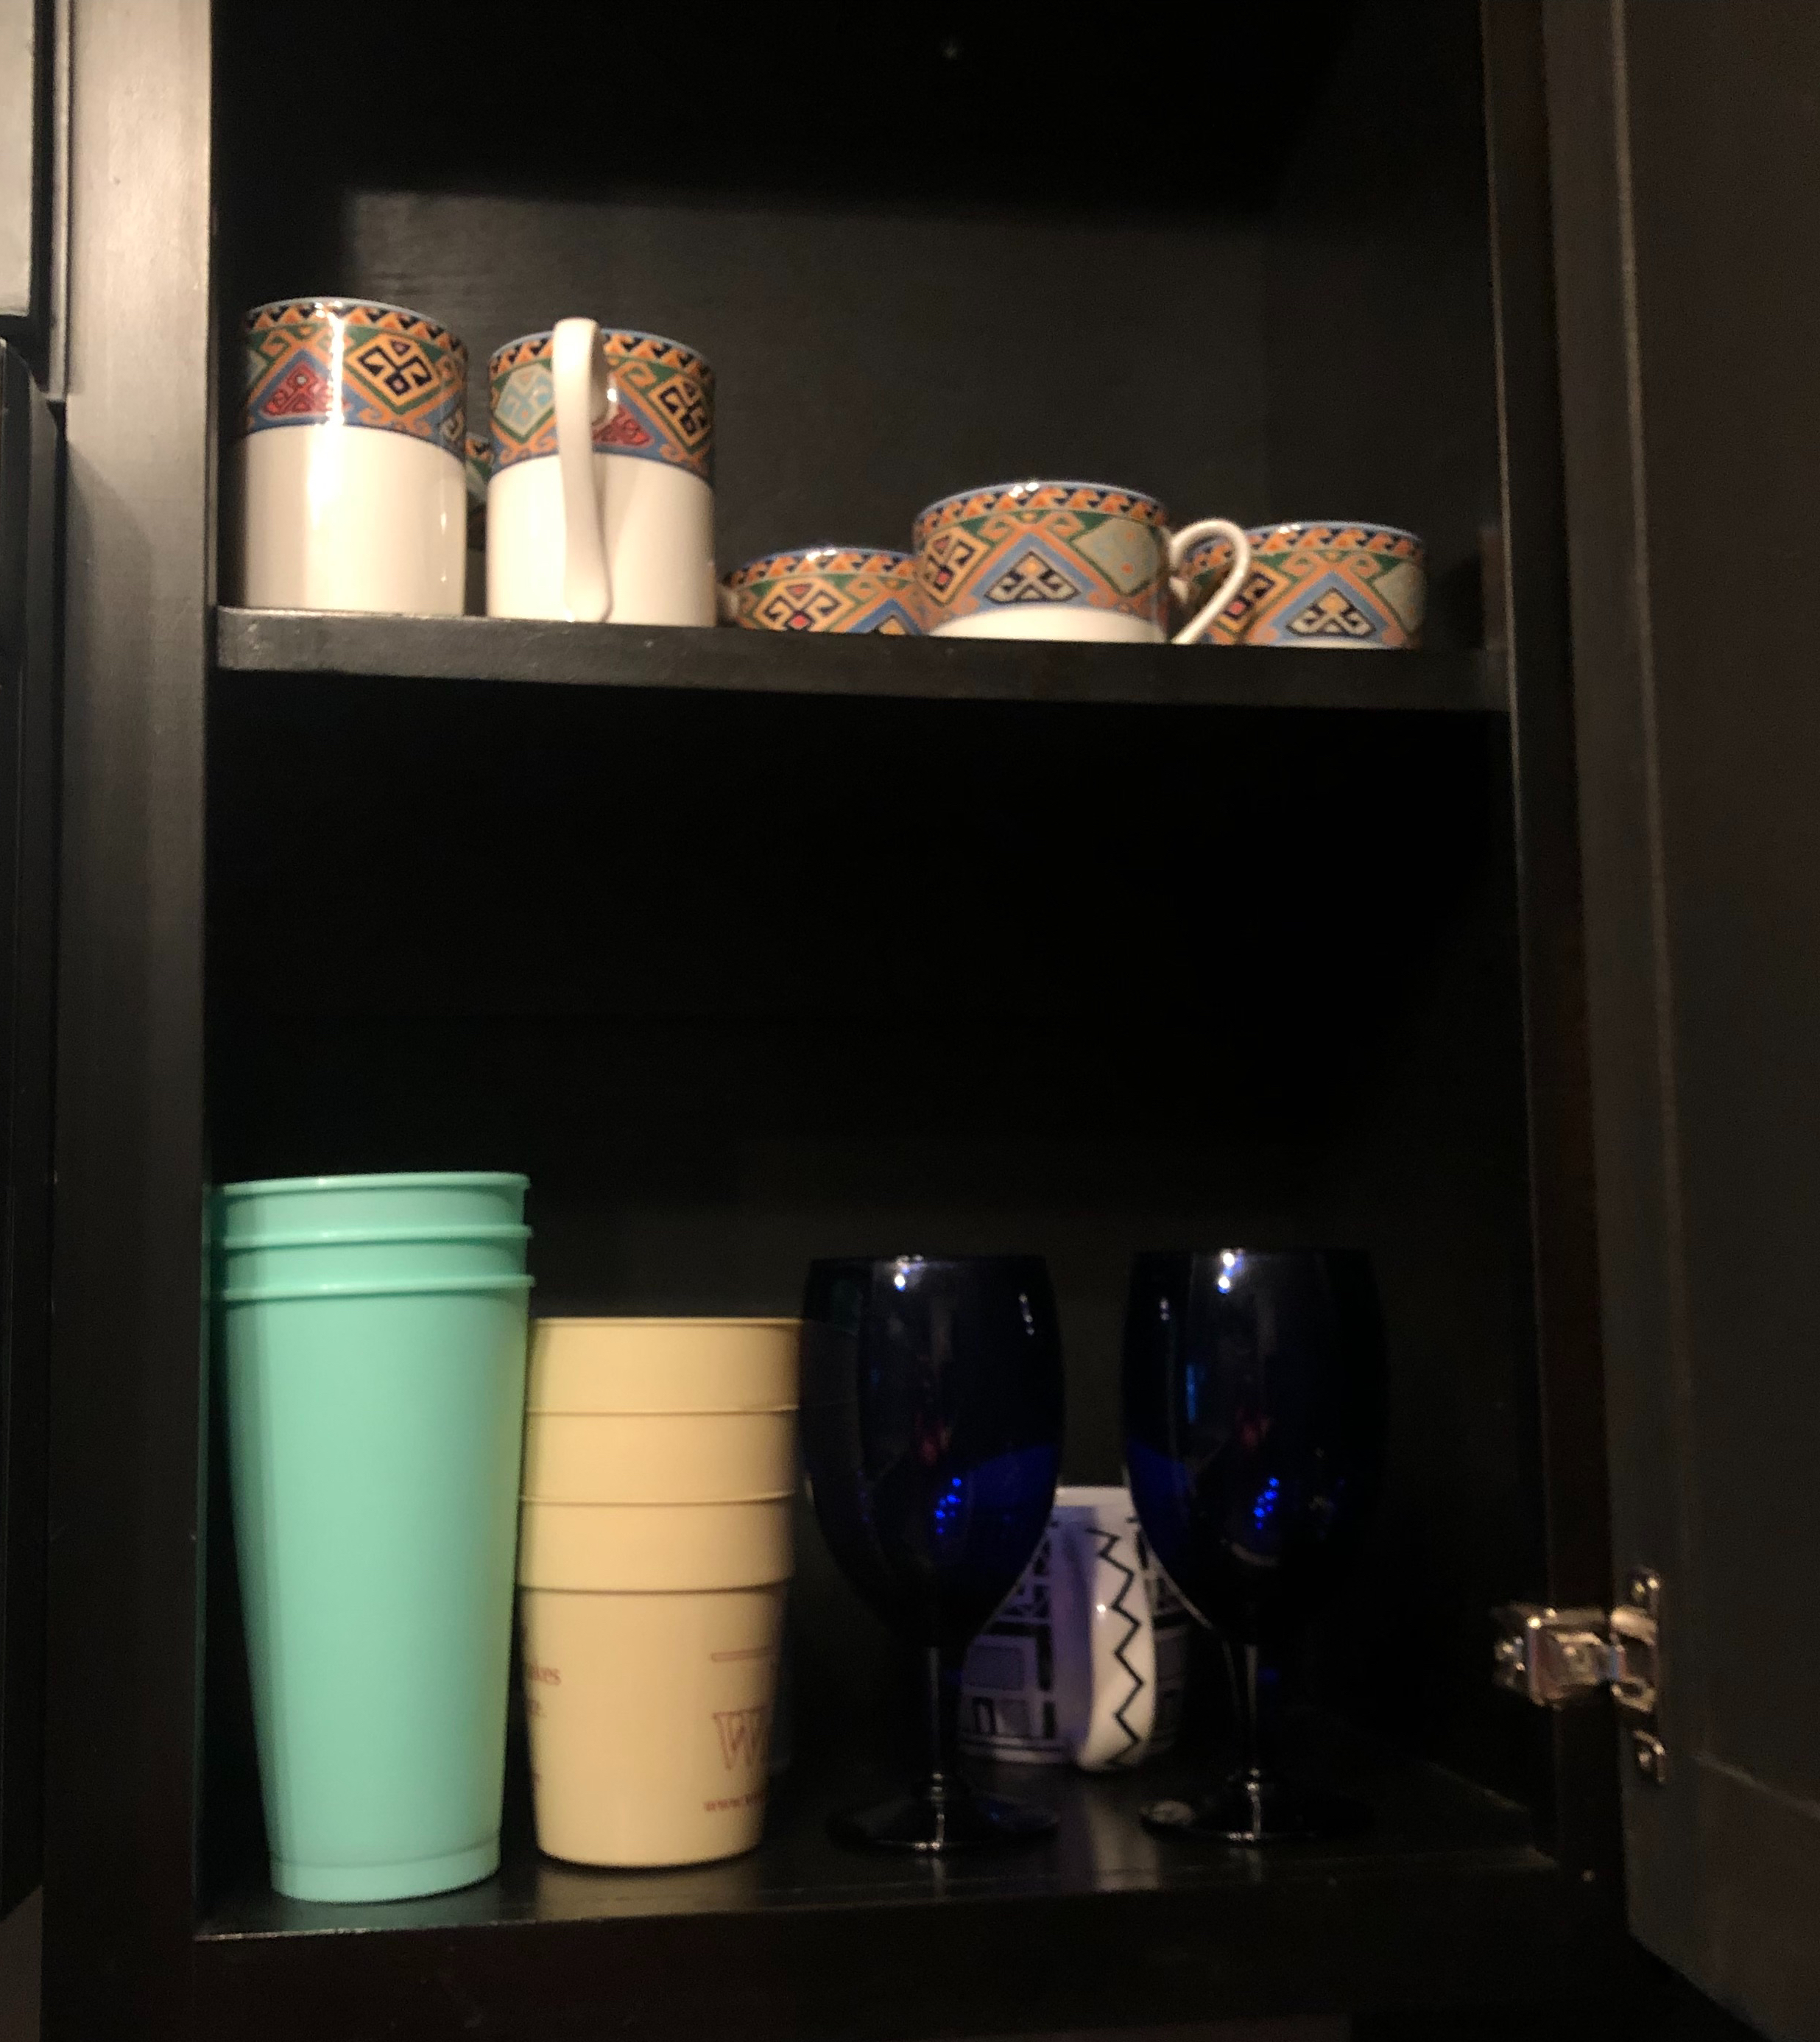 This is a picture of my kitchen cabinet after I spent time organizing it so that way my roommates and I could have easier access to certain cups we might want to use. This is especially good to do on Sunday, so that during the week we don't have to bother.